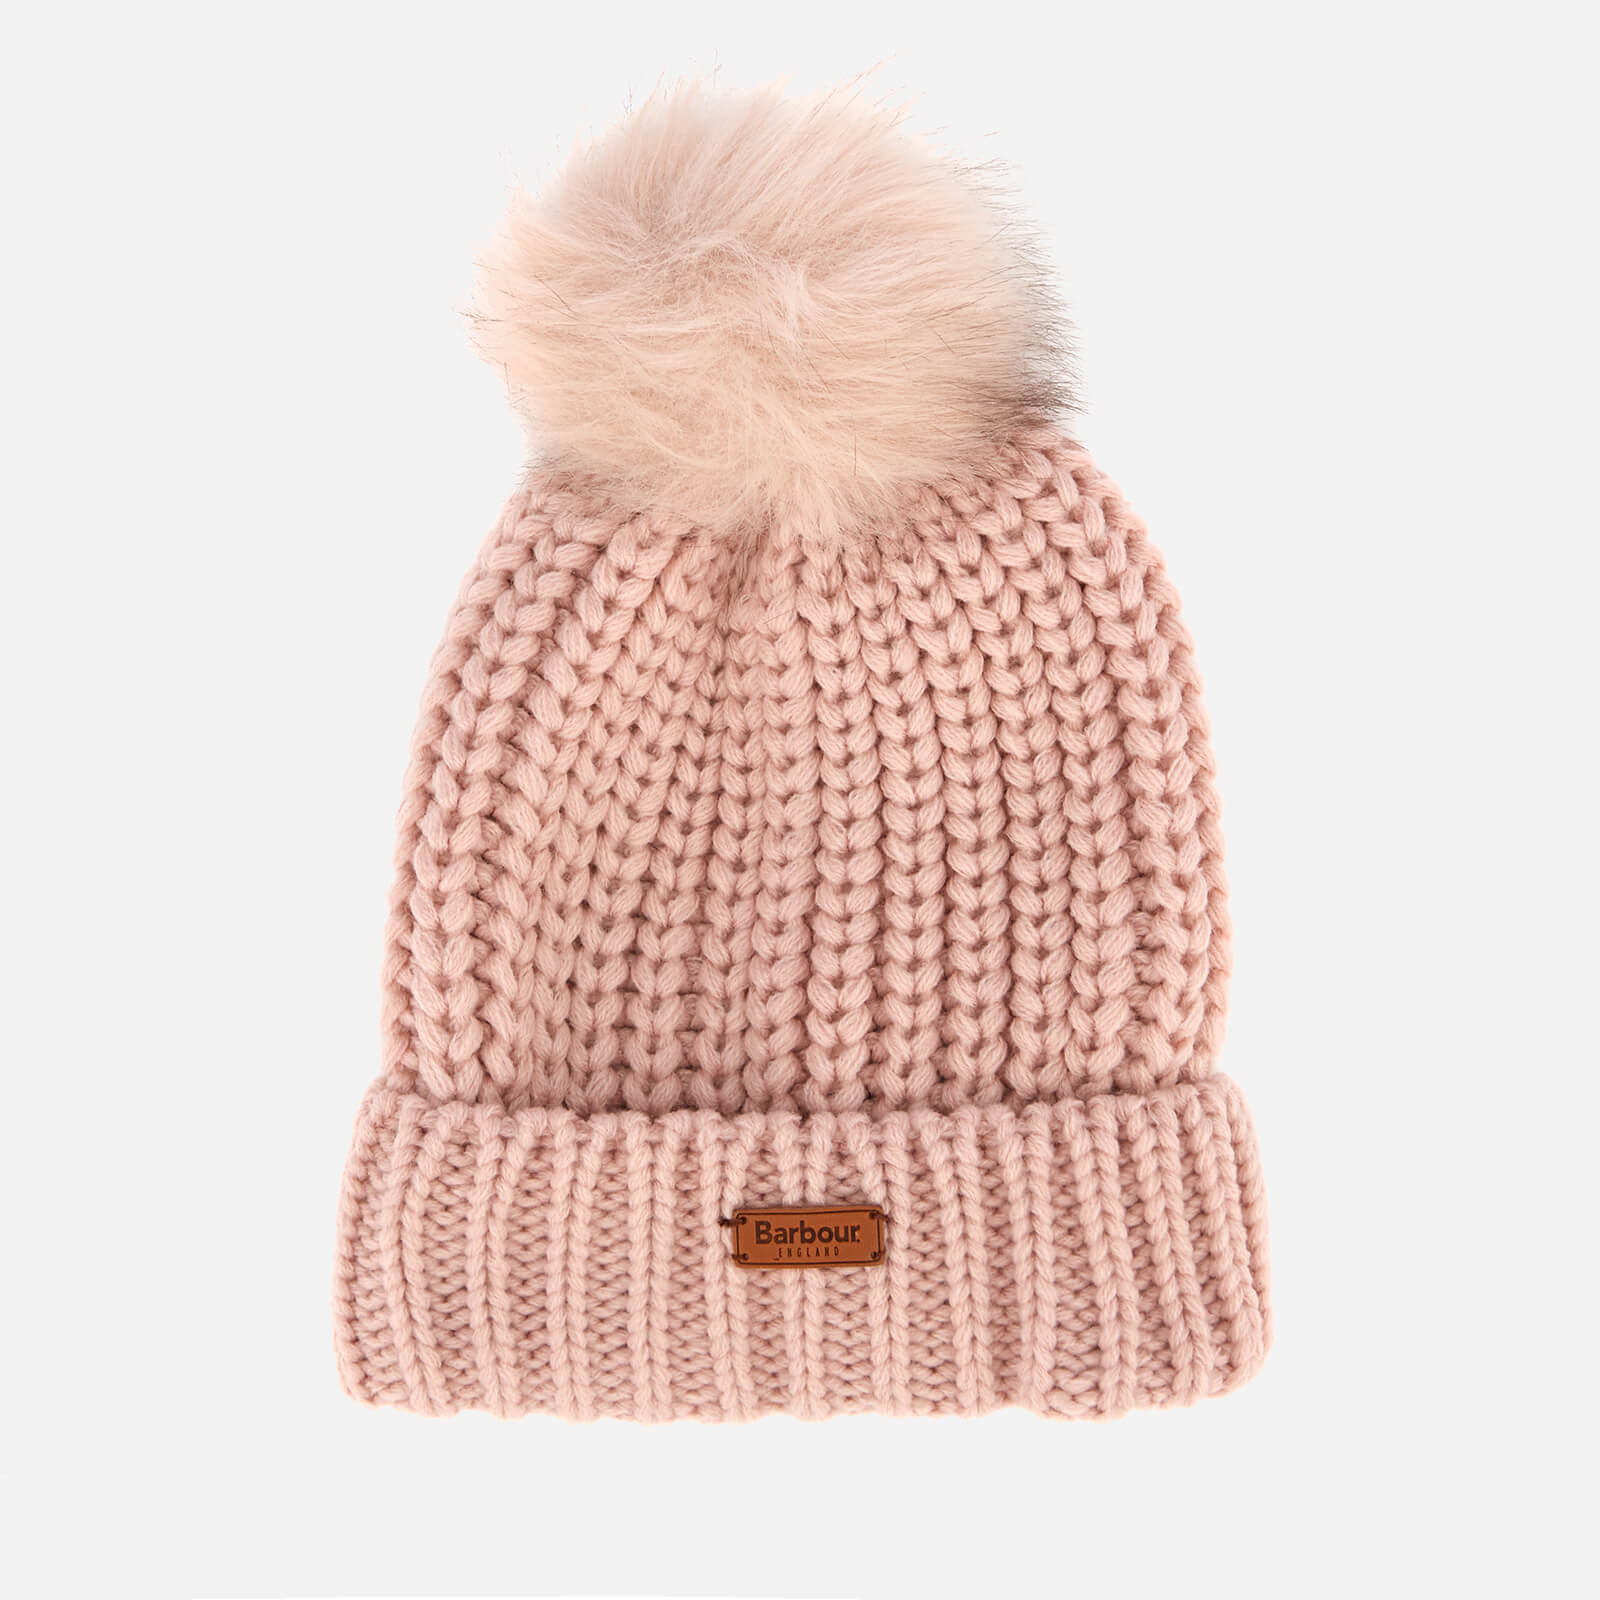 2a6acbf9 Barbour Women's Saltburn Beanie - Pink - Free UK Delivery over £50